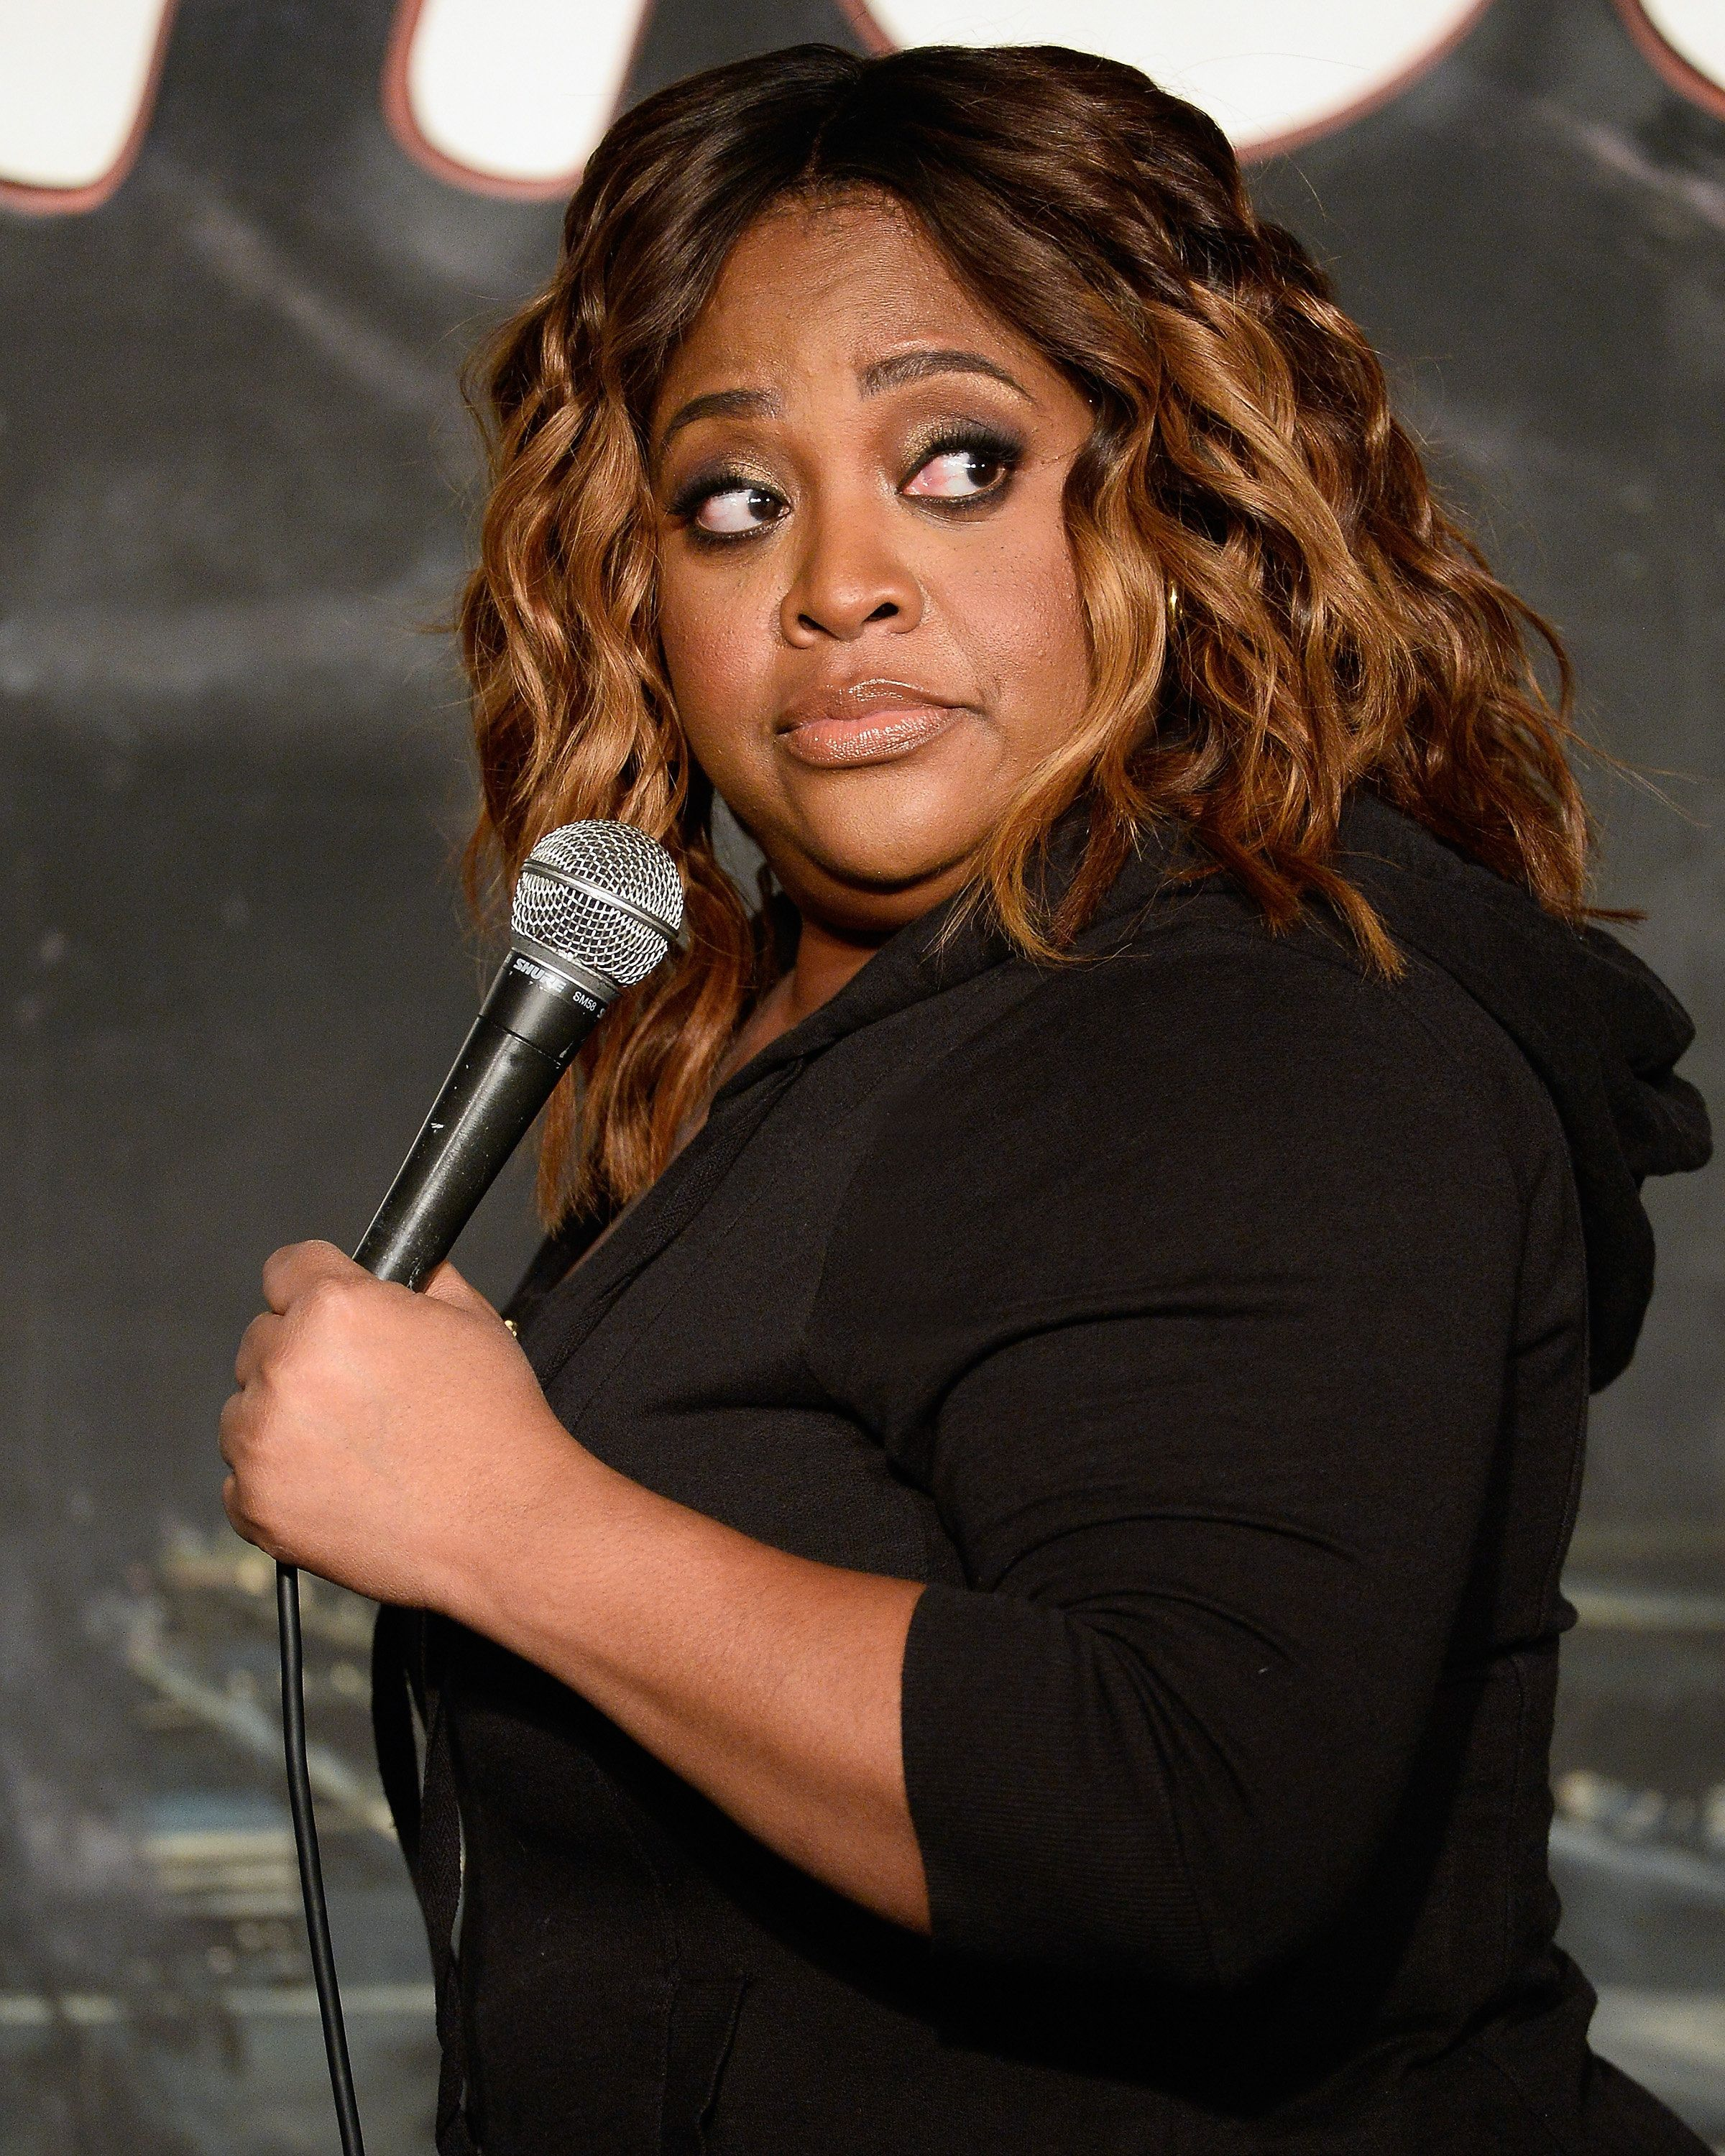 PASADENA, CA - FEBRUARY 05:  Comedian Sherri Shepherd performs during her appearance at The Ice House Comedy Club on February 5, 2016 in Pasadena, California.  (Photo by Michael Schwartz/WireImage)